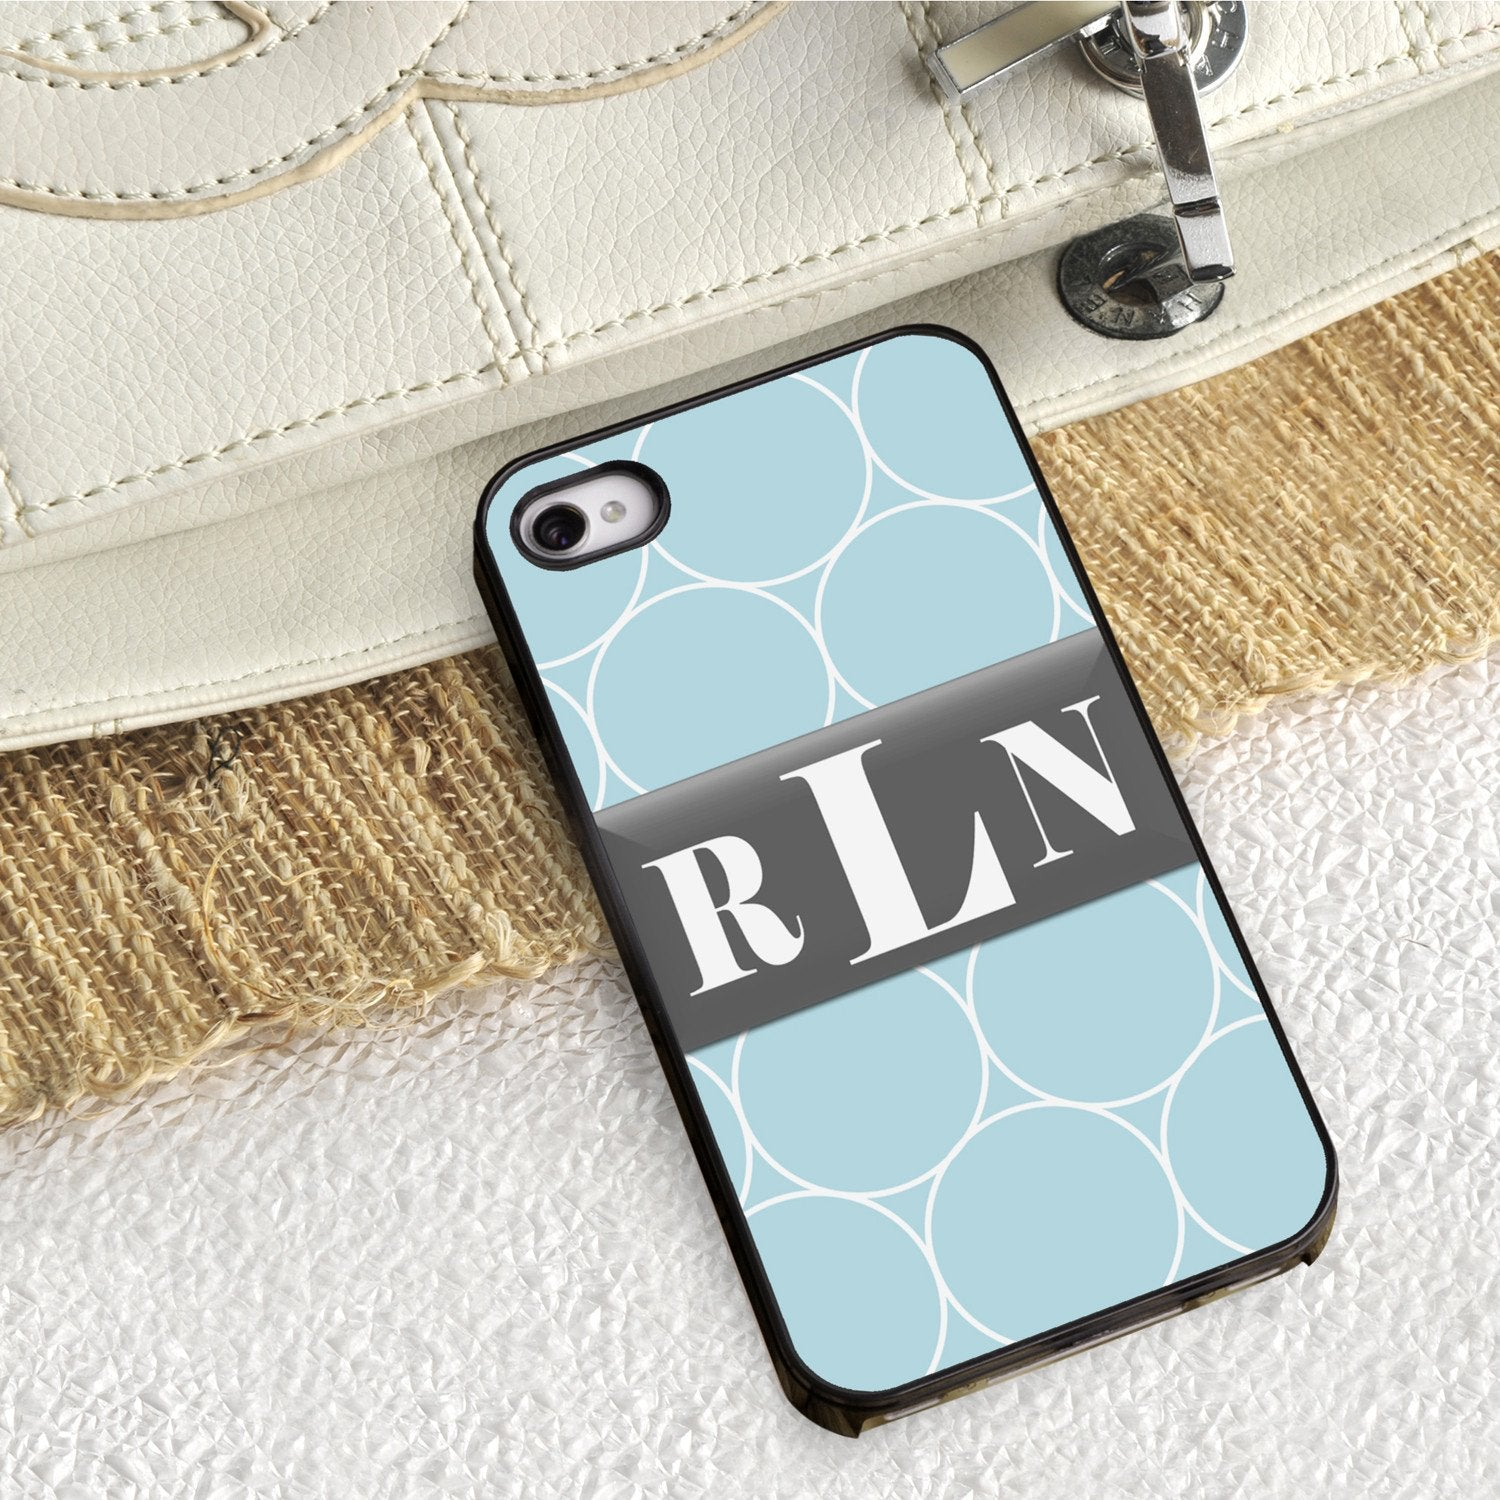 Personalized-Black-Trimmed-iPhone-Cover-3-Initials